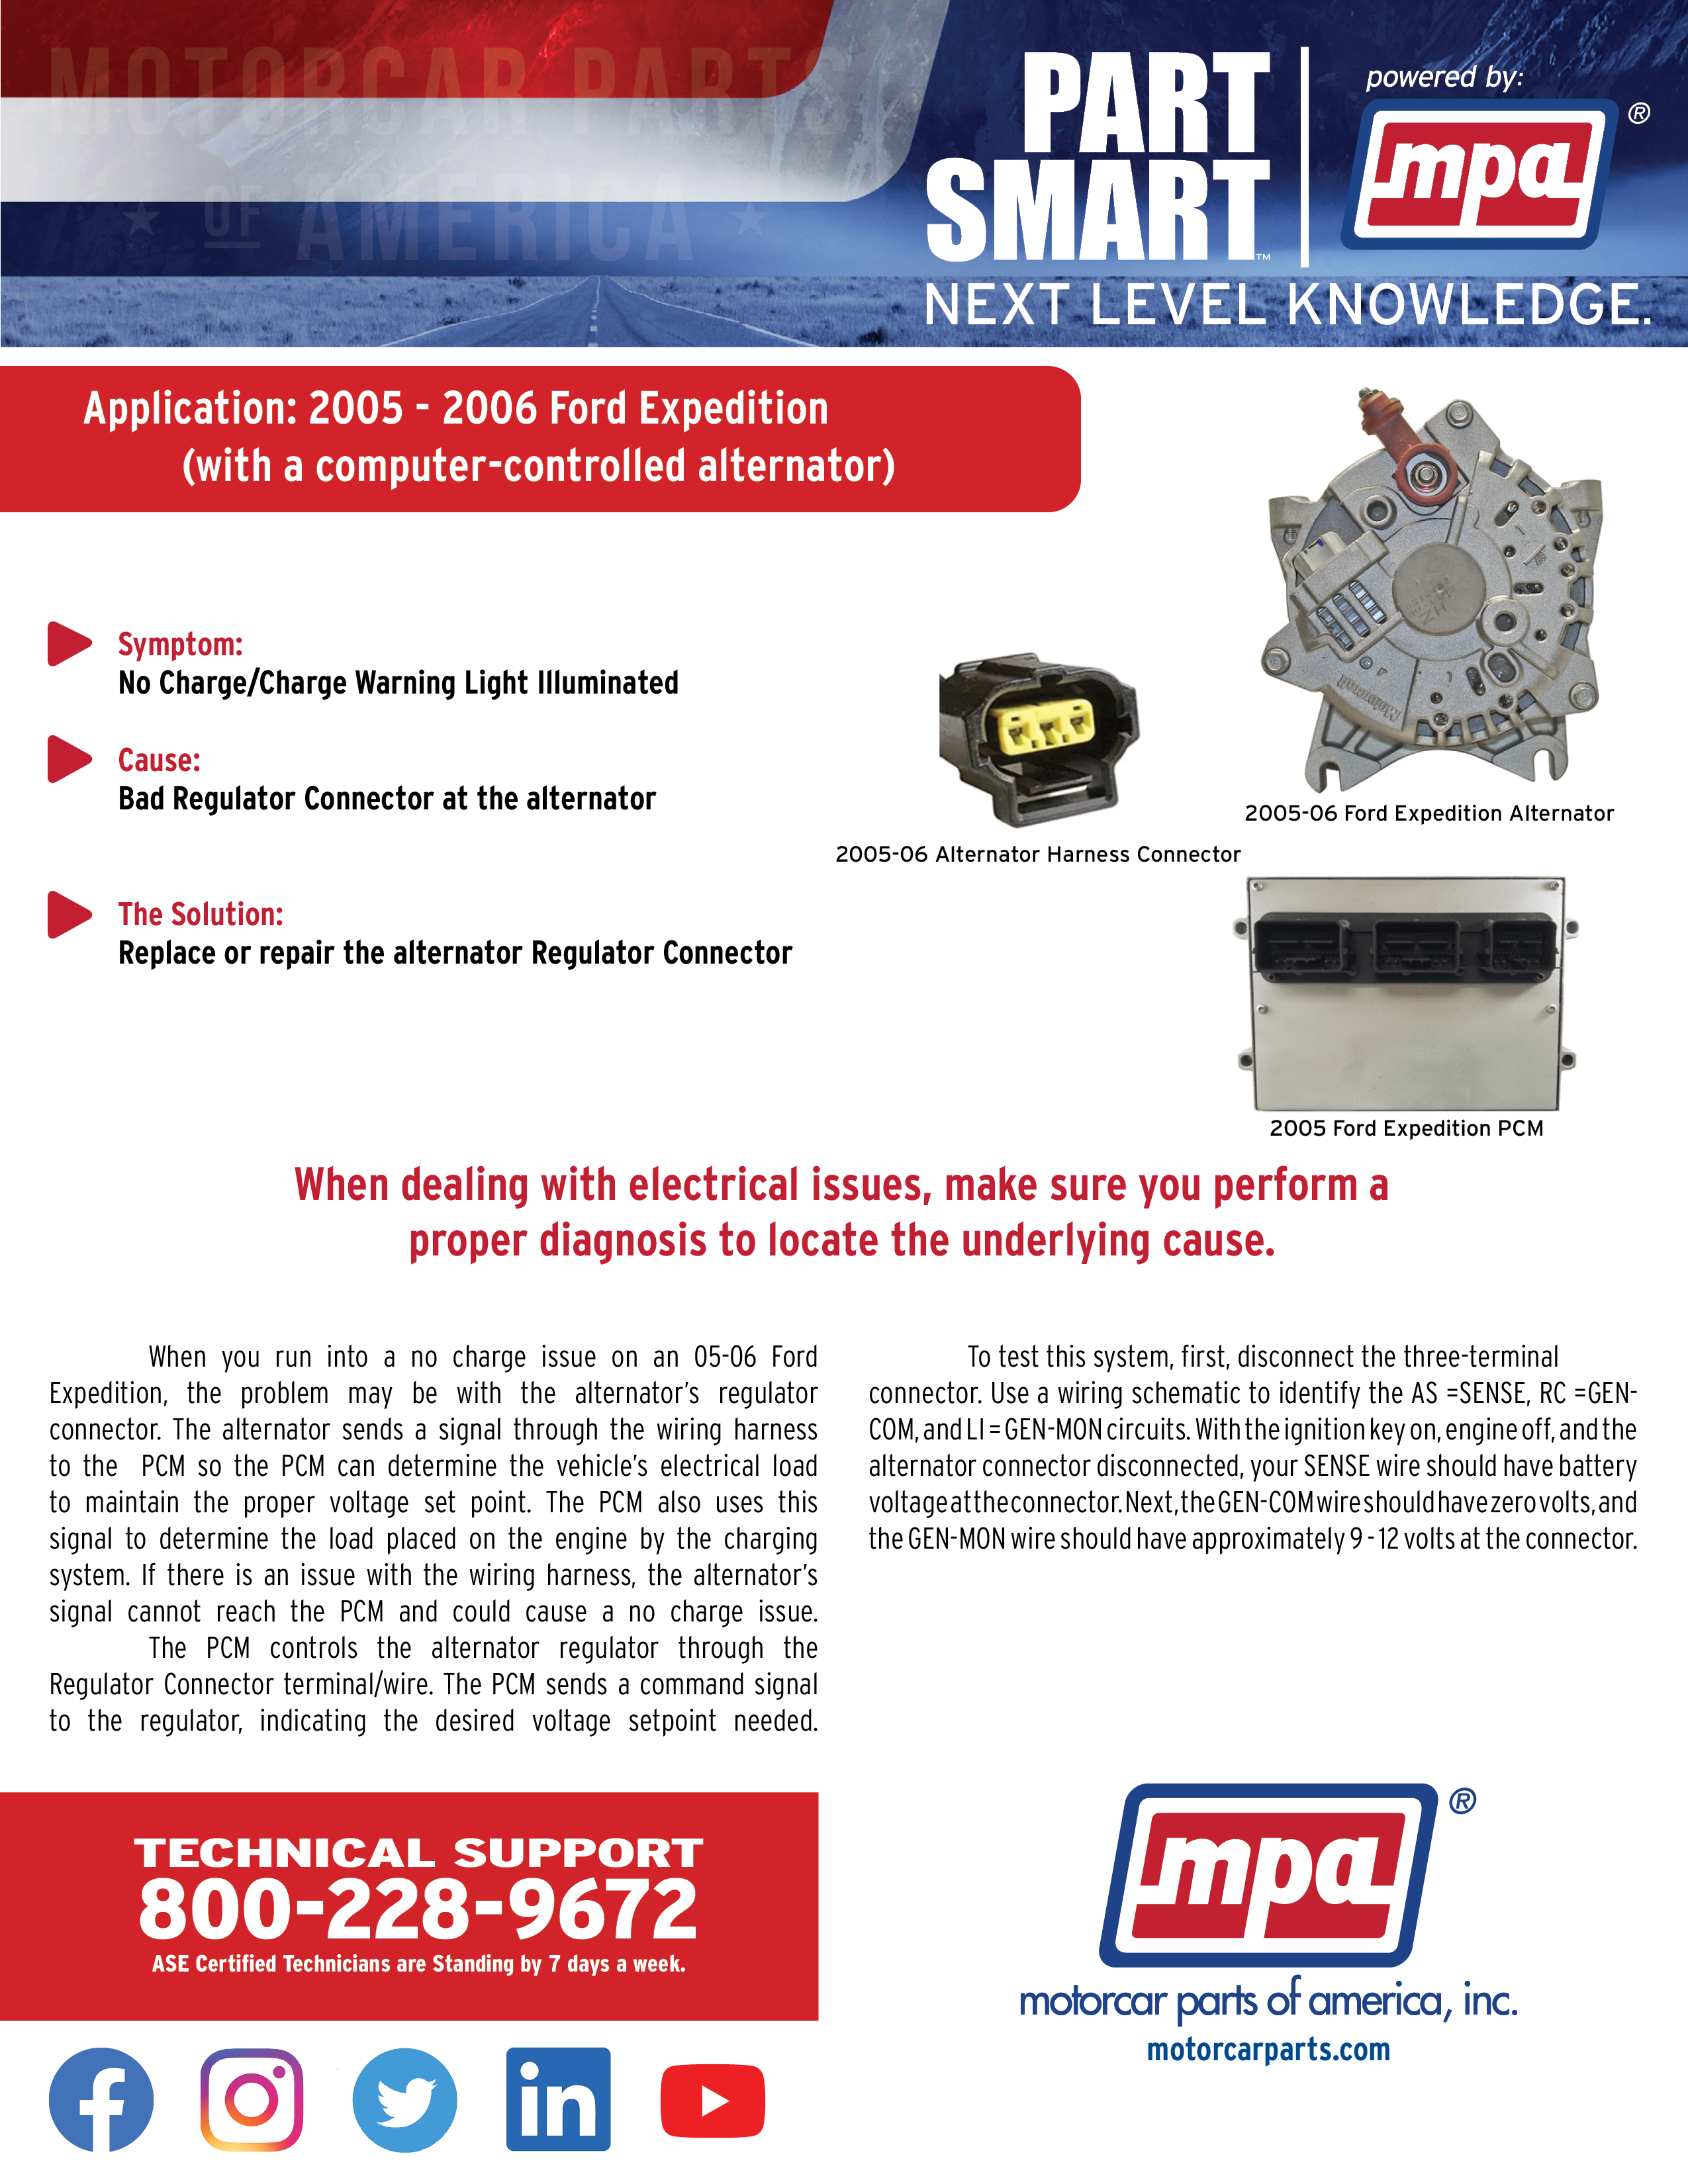 Latest Part Smart Article: A bad alternator regulator connector can cause a  no charge issue or your charge warning light to illuminate on 2005-06 Ford  Expeditions. - Motorcar Parts of AmericaMotorcar Parts of America